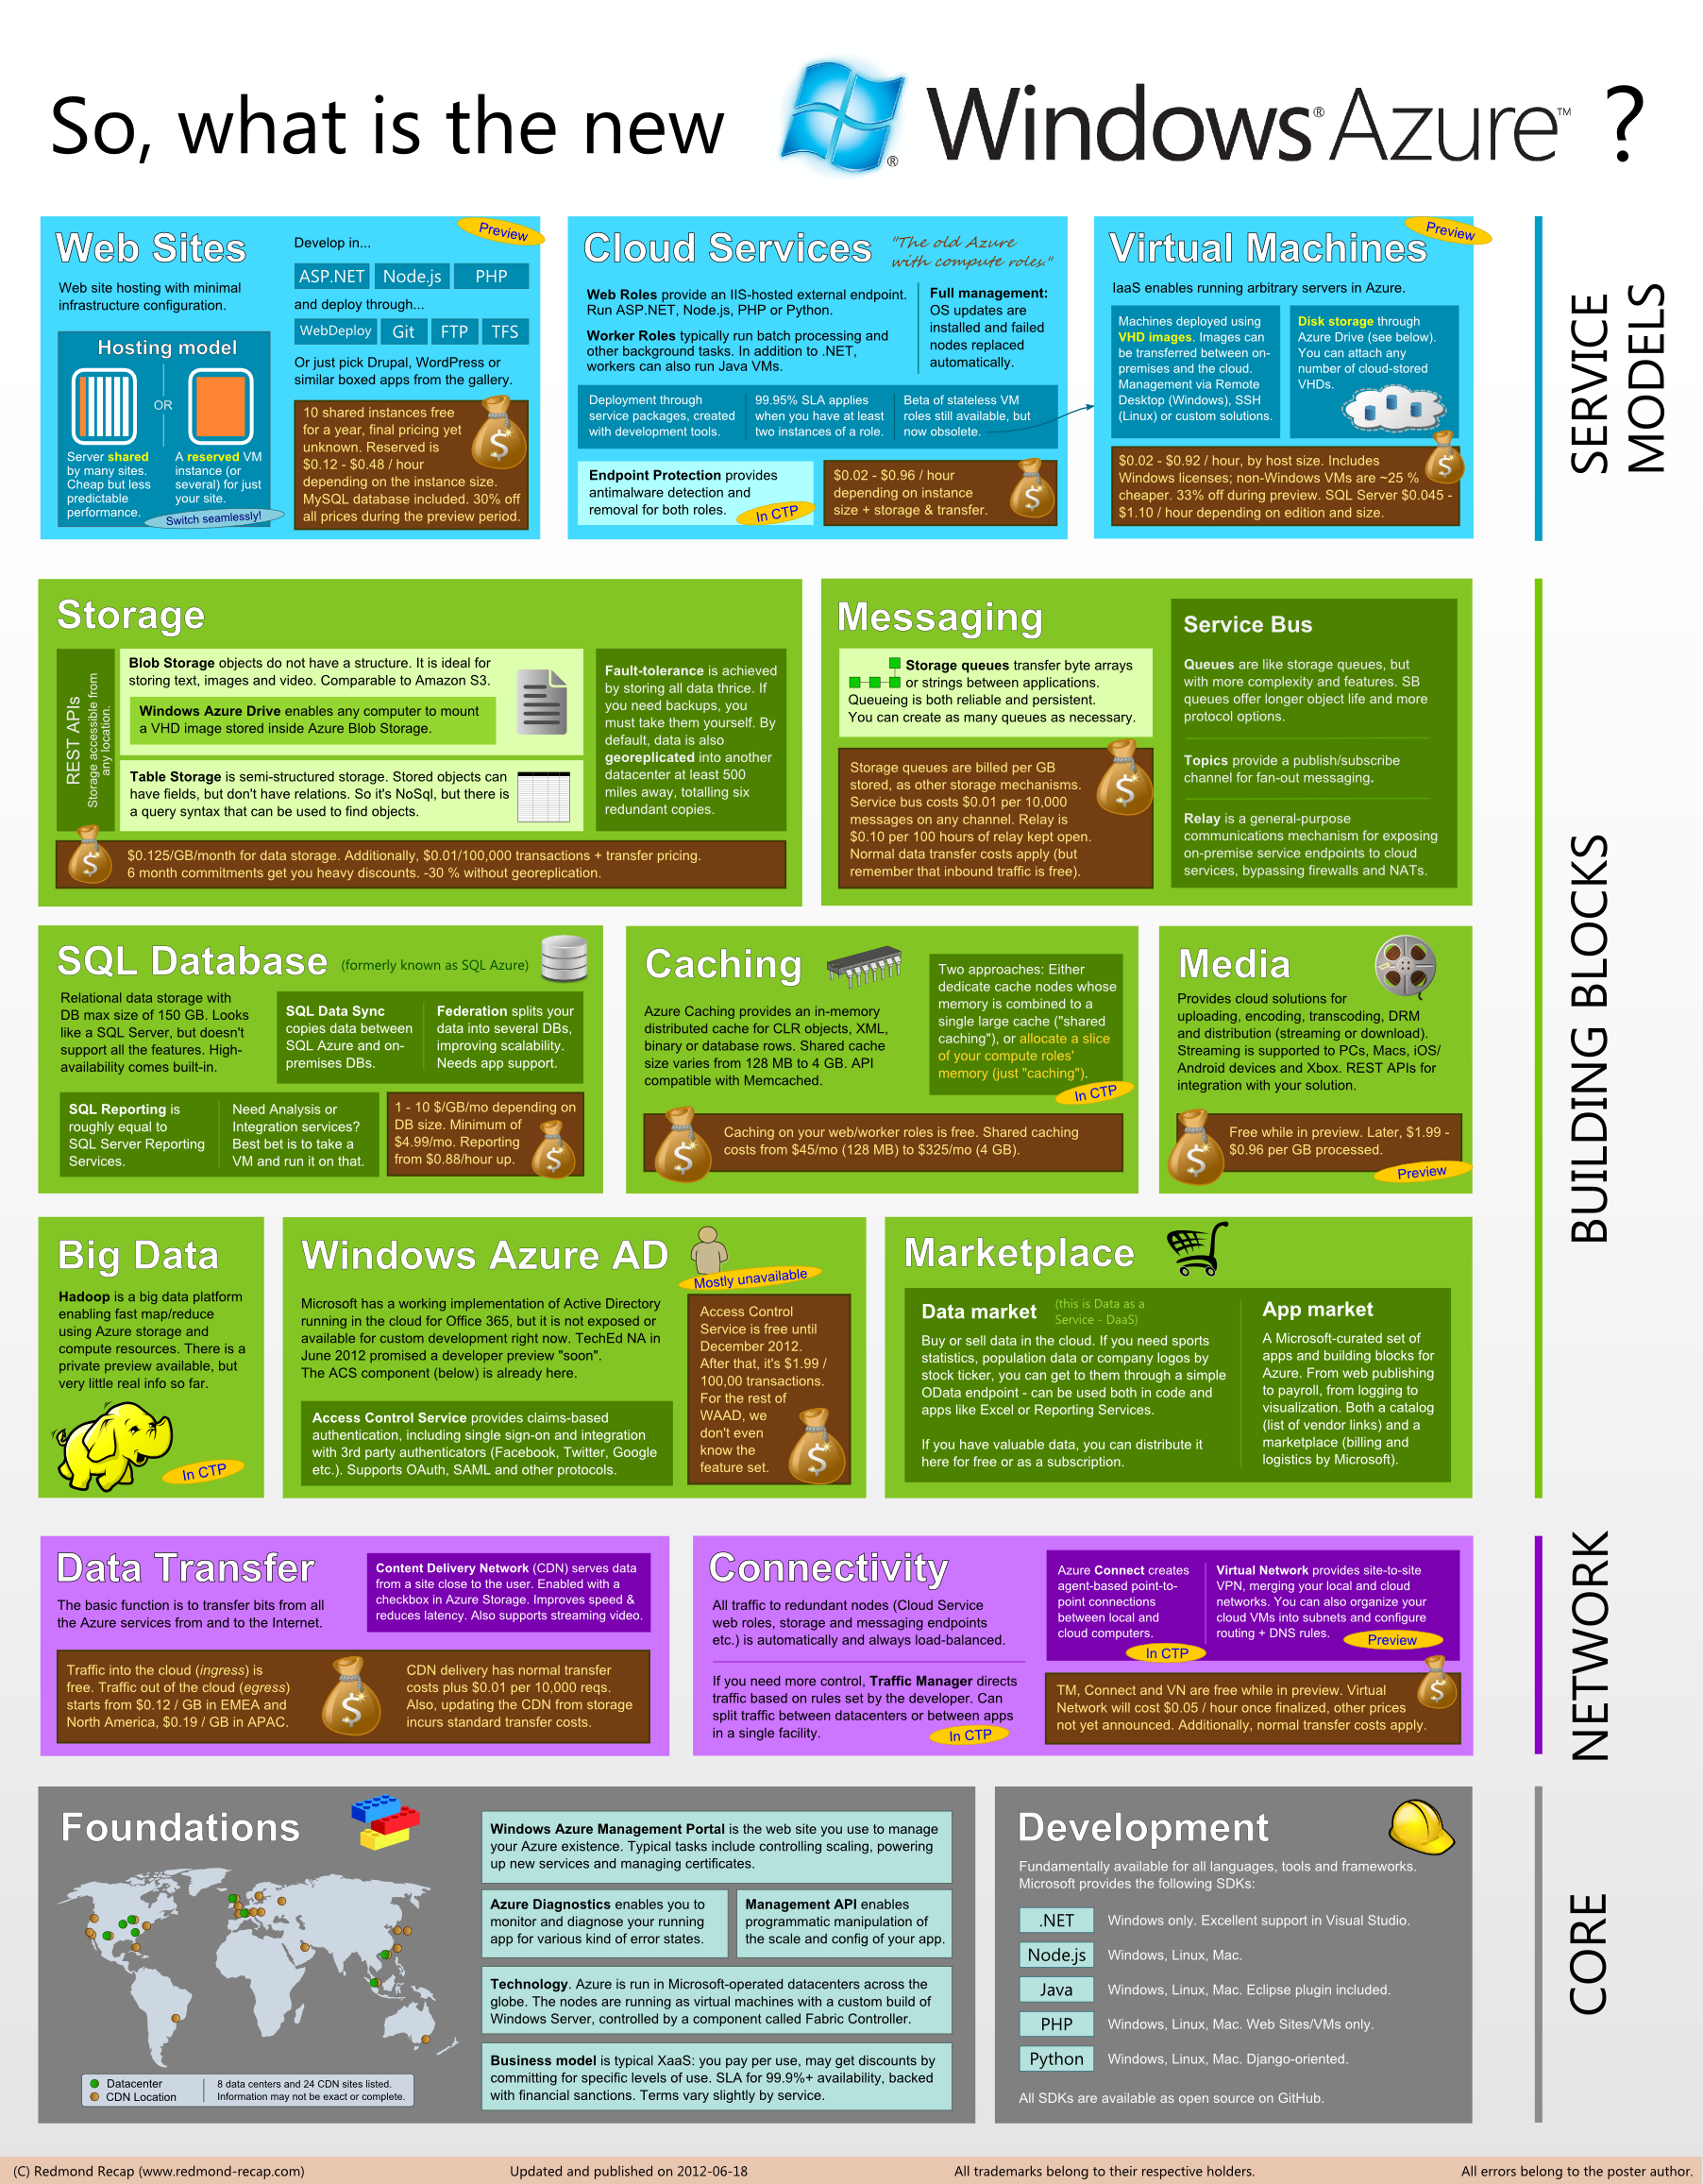 So, what is the new Windows Azure? Infographic of